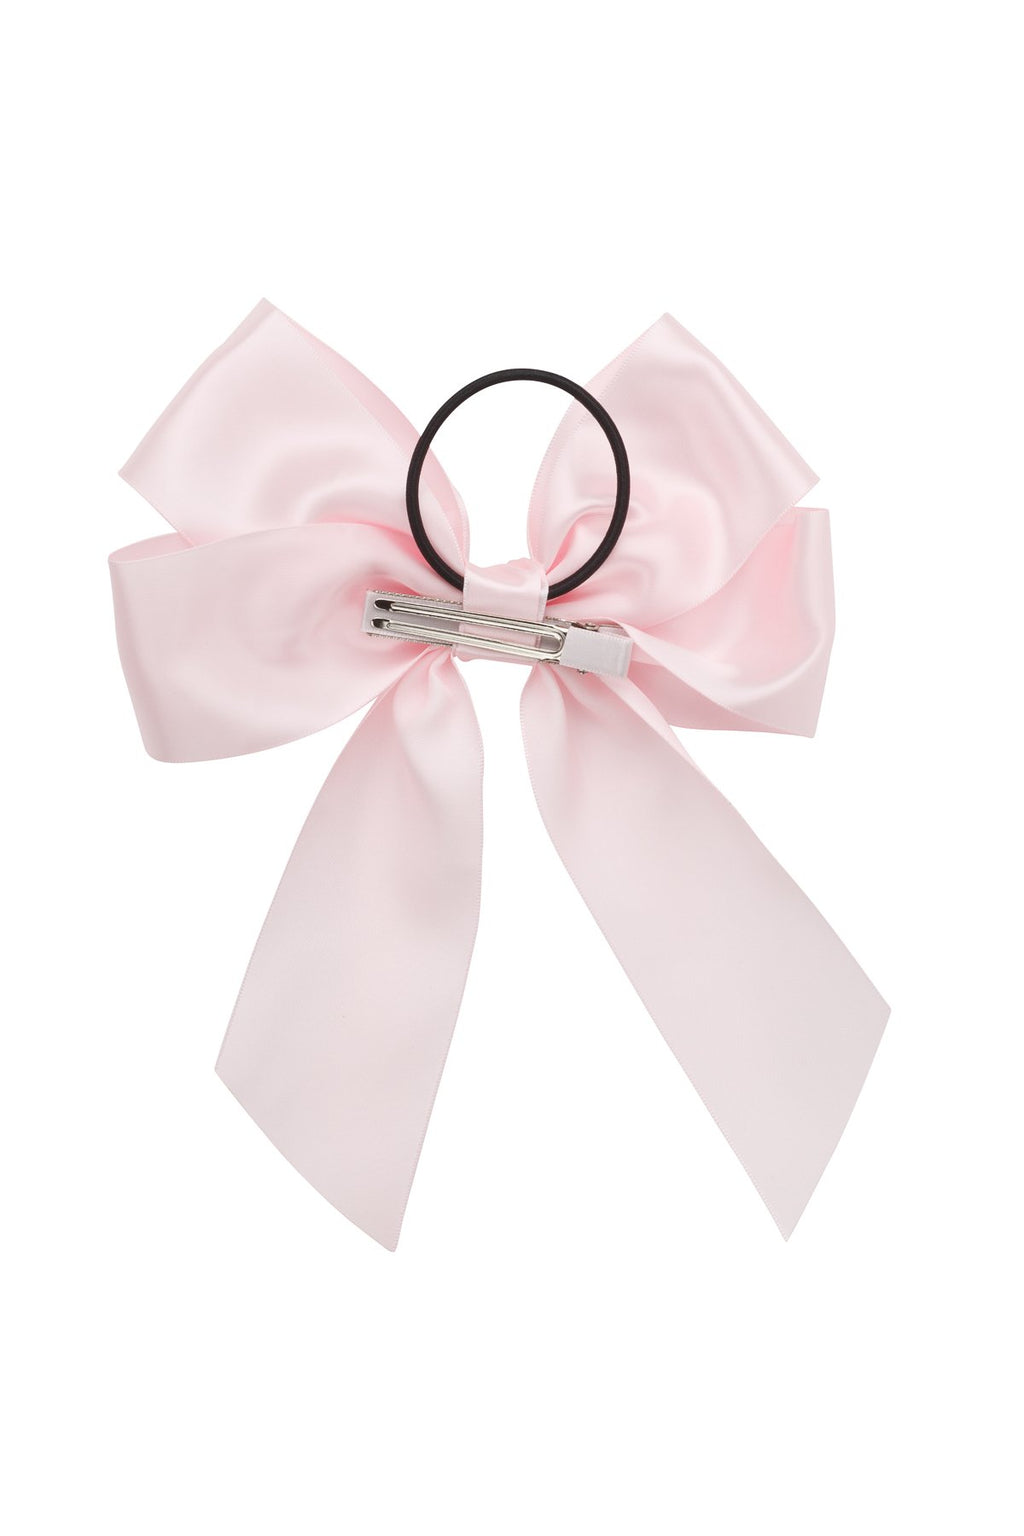 Oversized Bow Pony/Clip - Powder Pink - PROJECT 6, modest fashion